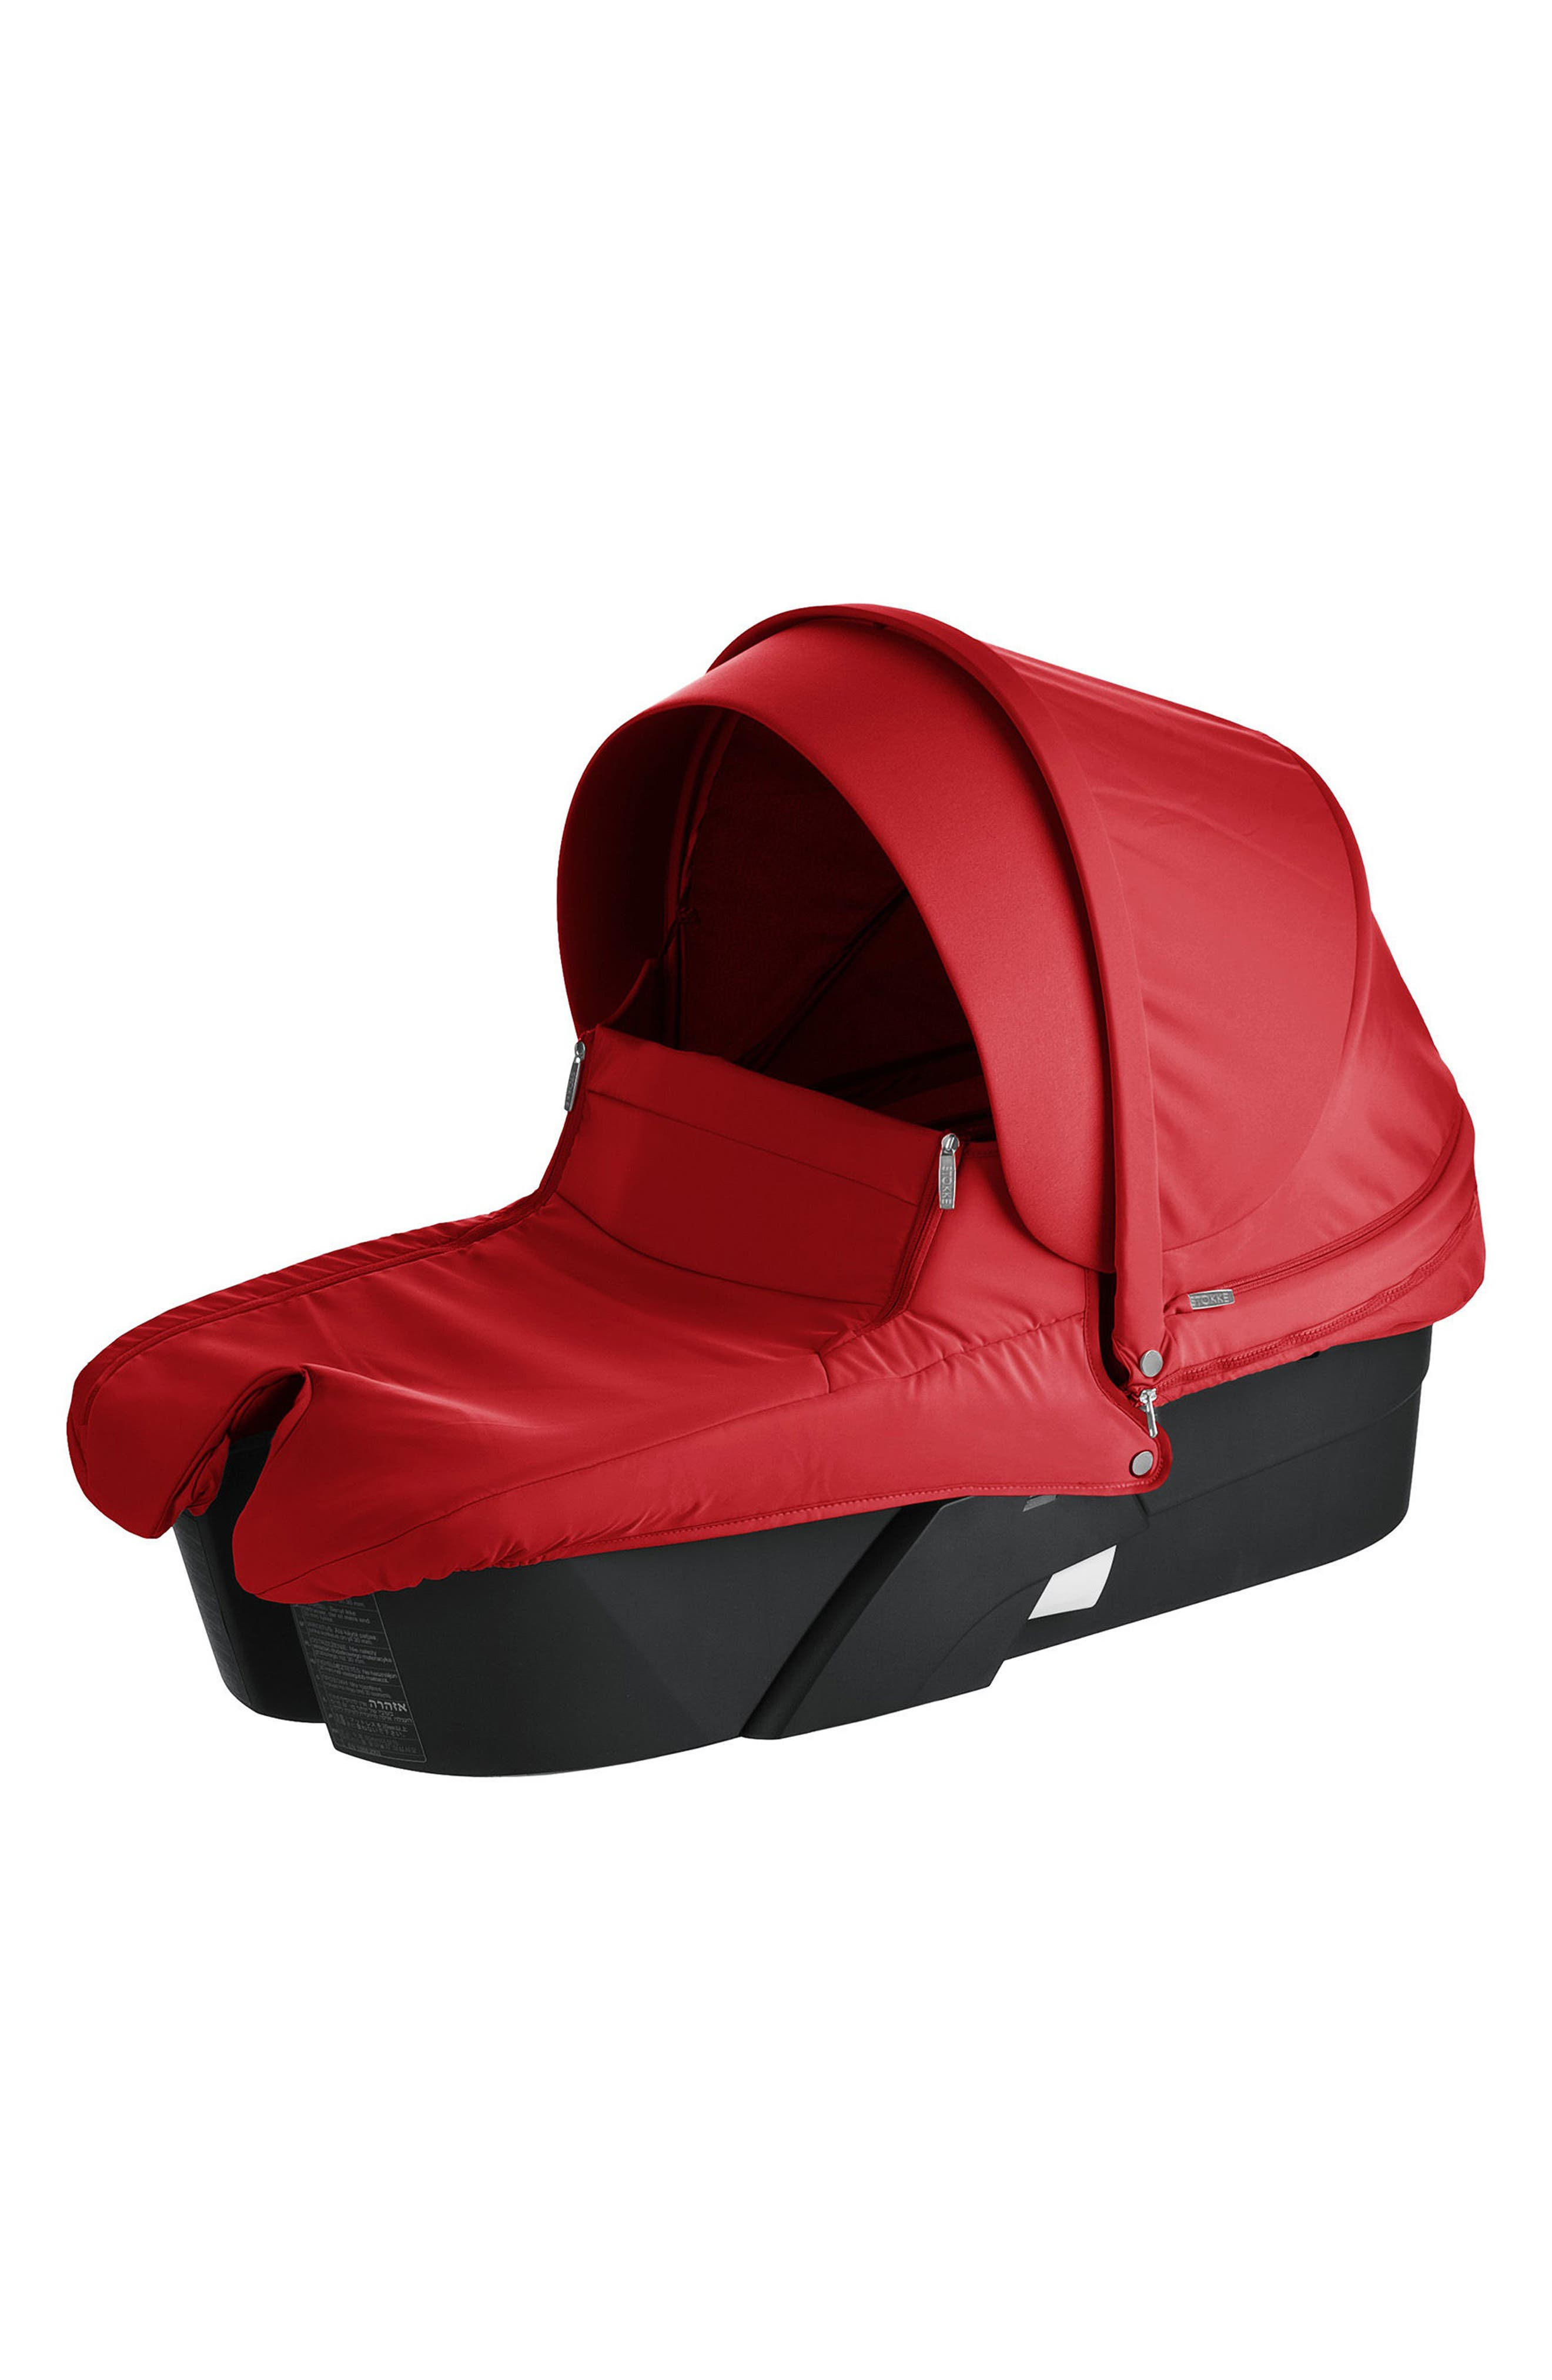 Xplory<sup>®</sup> Black Frame Stroller Carry Cot,                         Main,                         color, Red